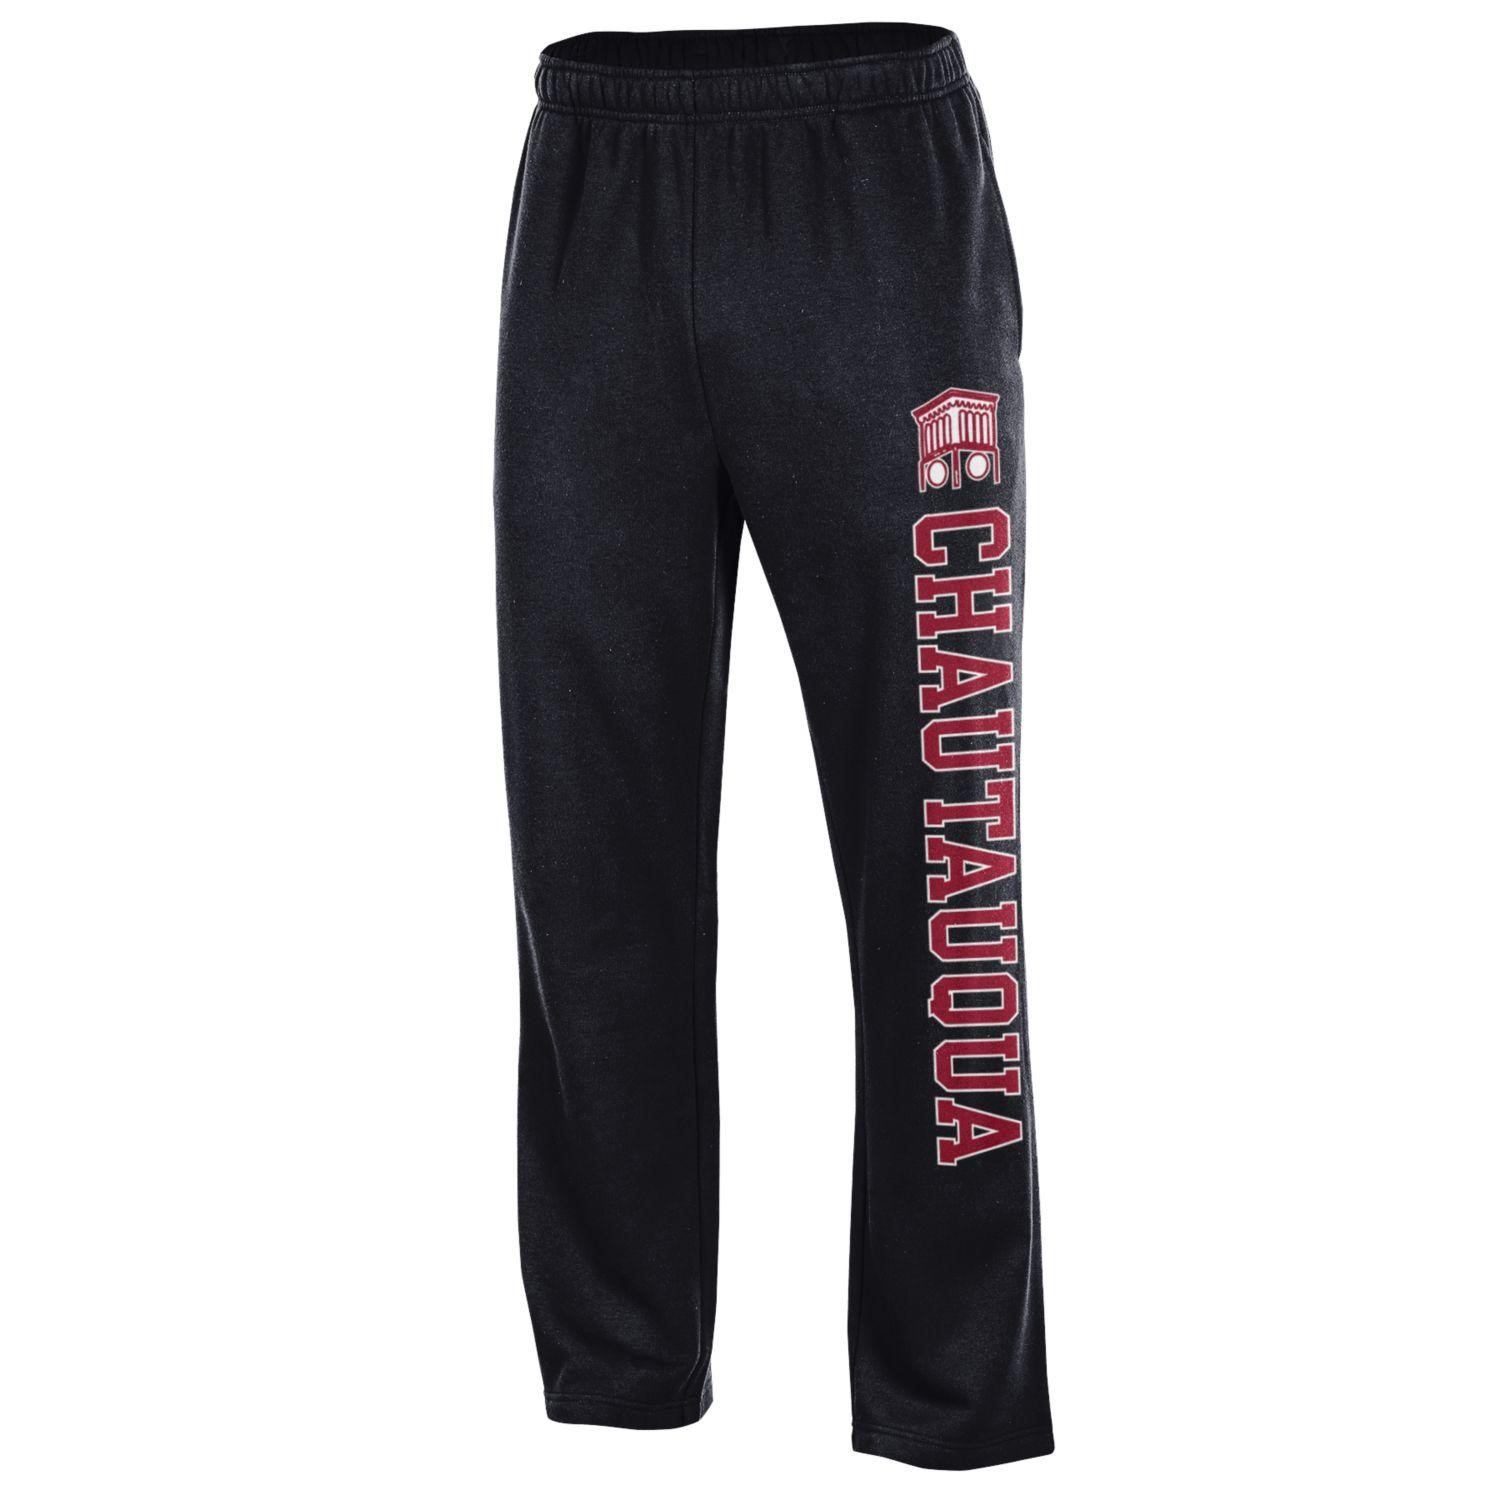 black and red Chautauqua sweatpants